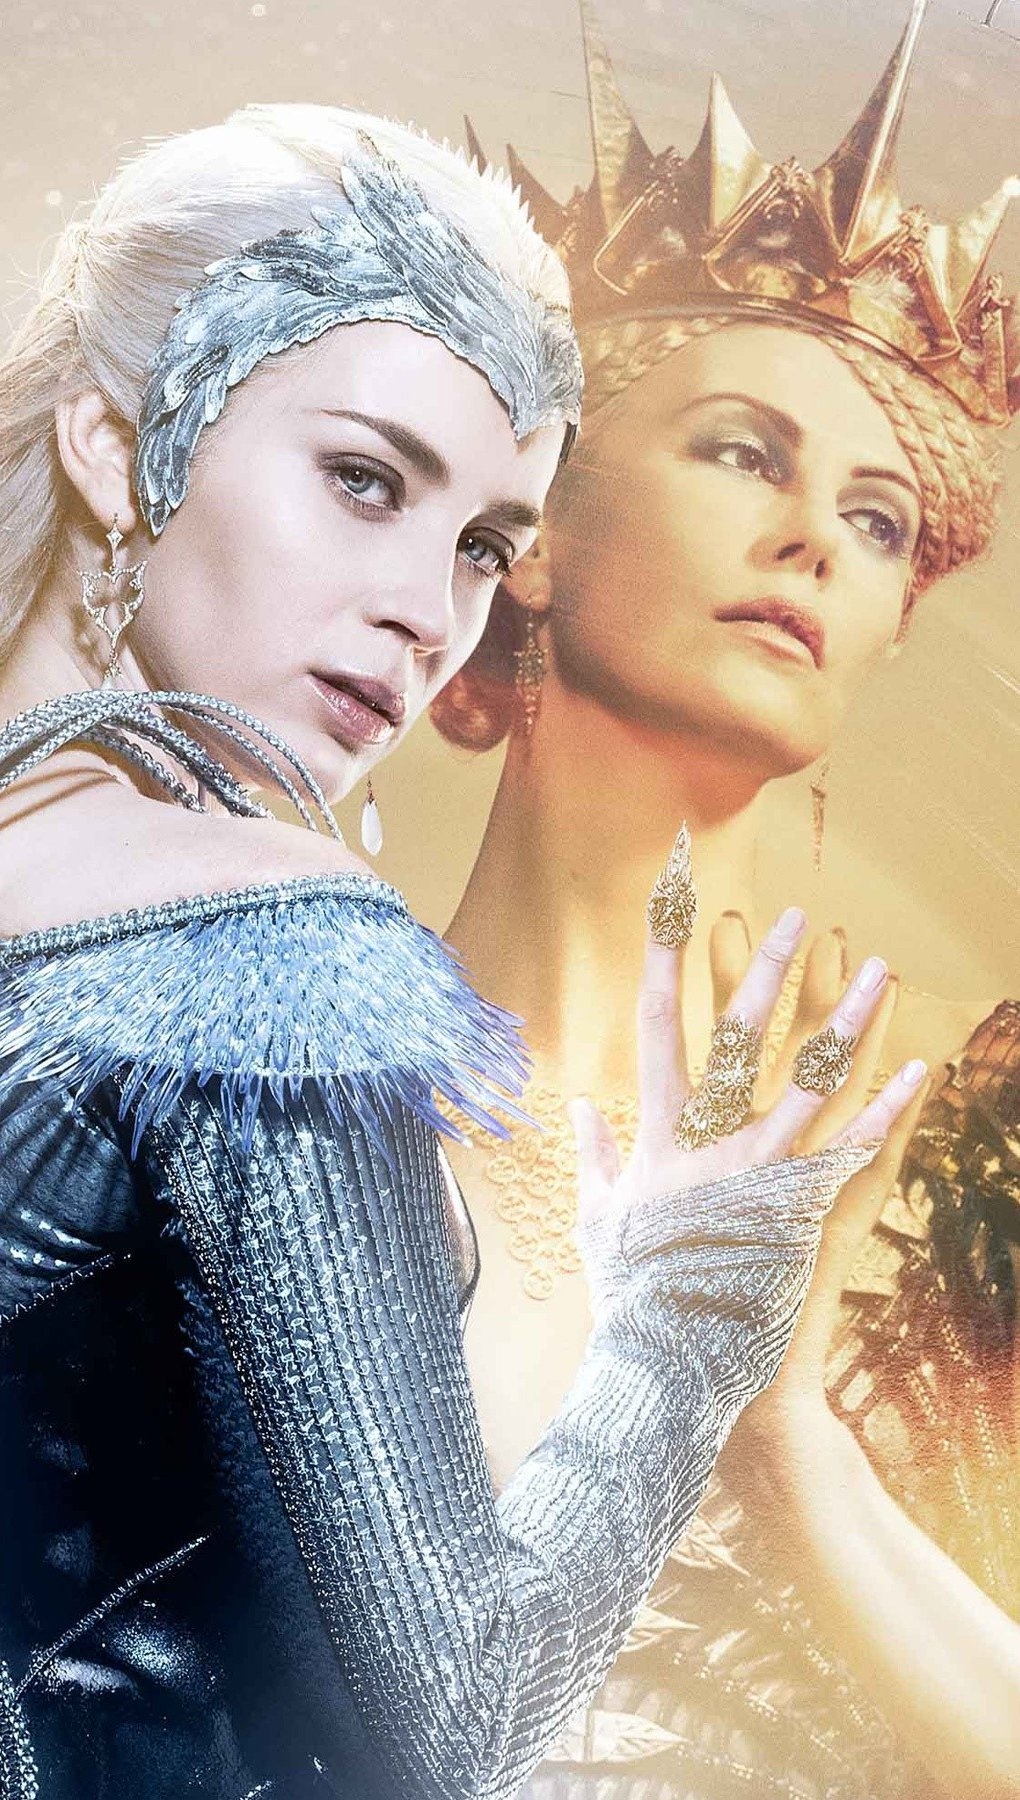 Wallpaper Ice queen in The hunter and the ice queen Vertical